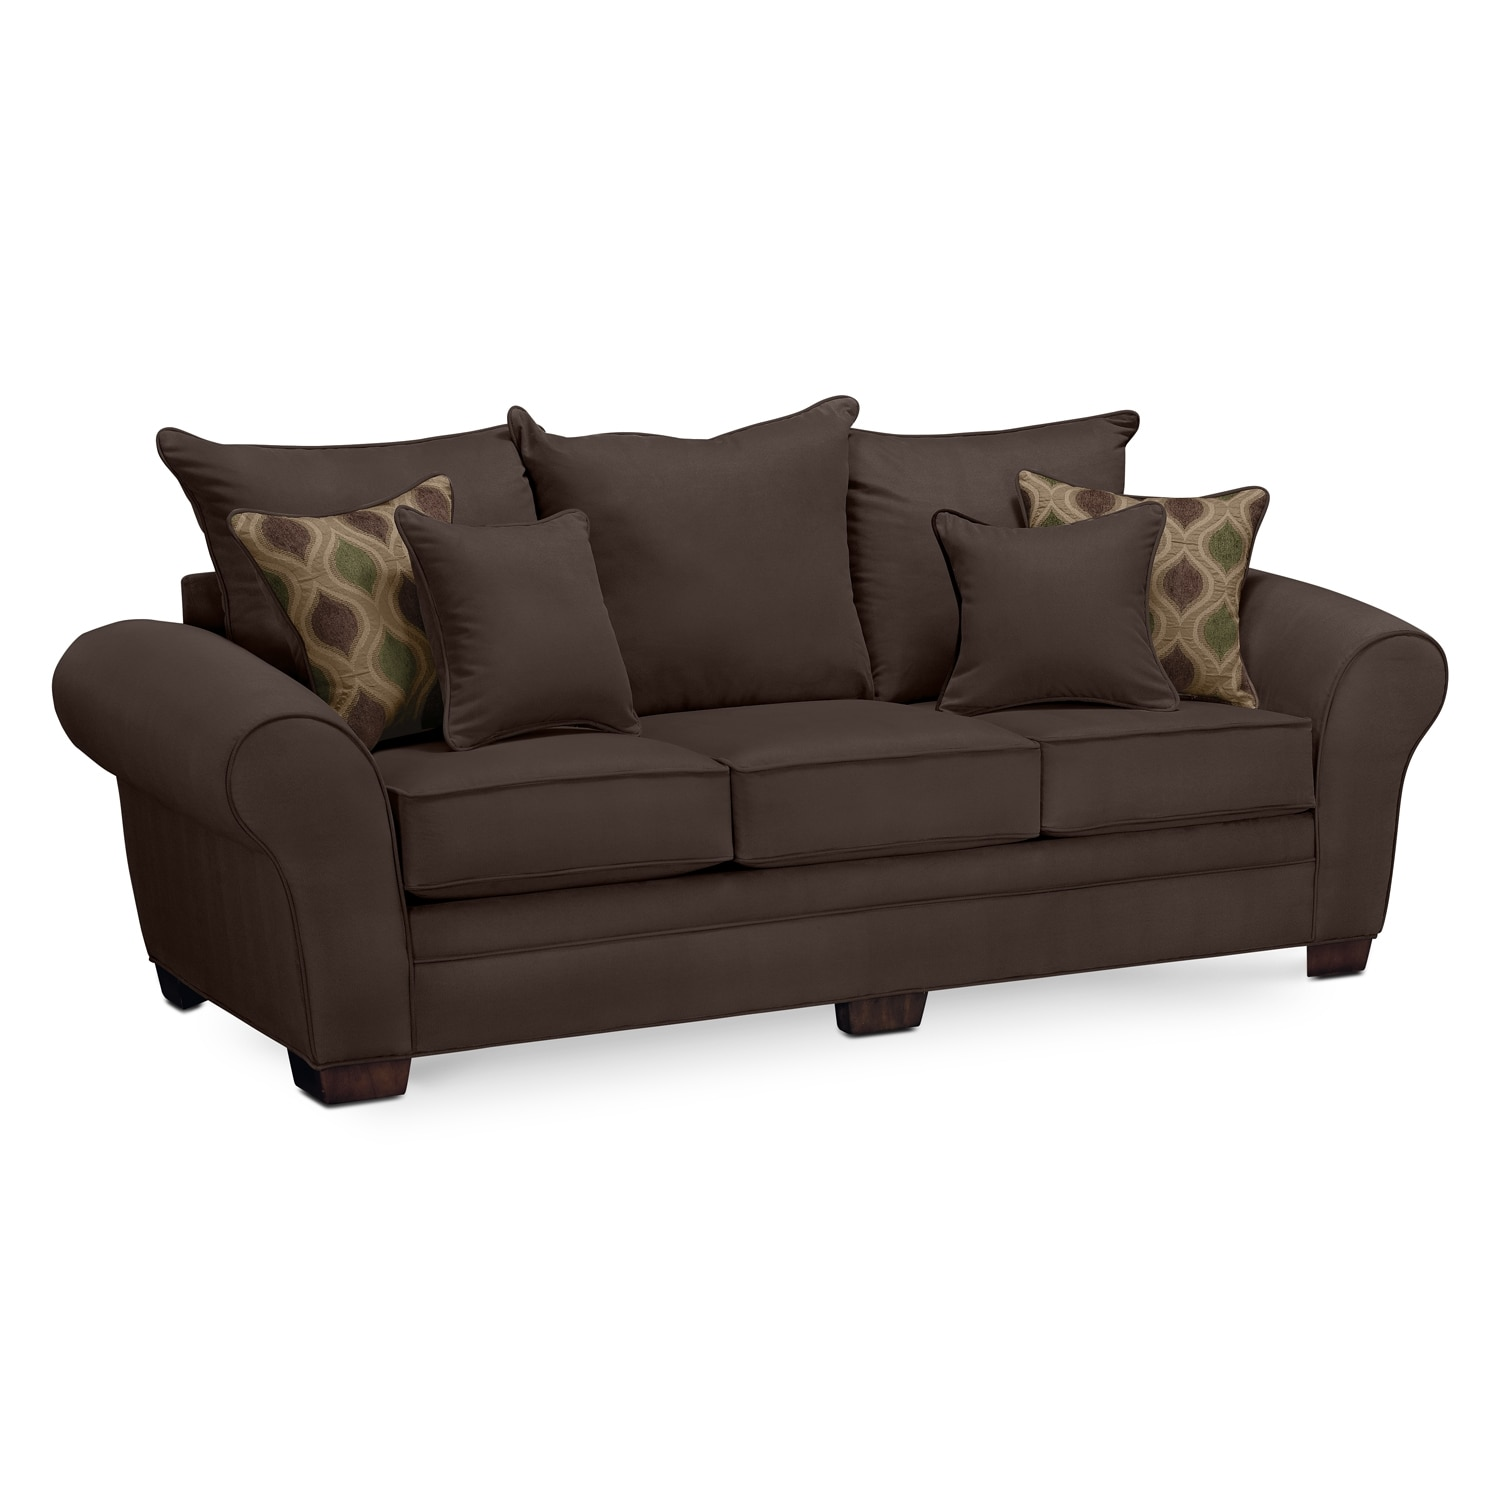 Rendezvous sofa chocolate american signature furniture for Signature furniture